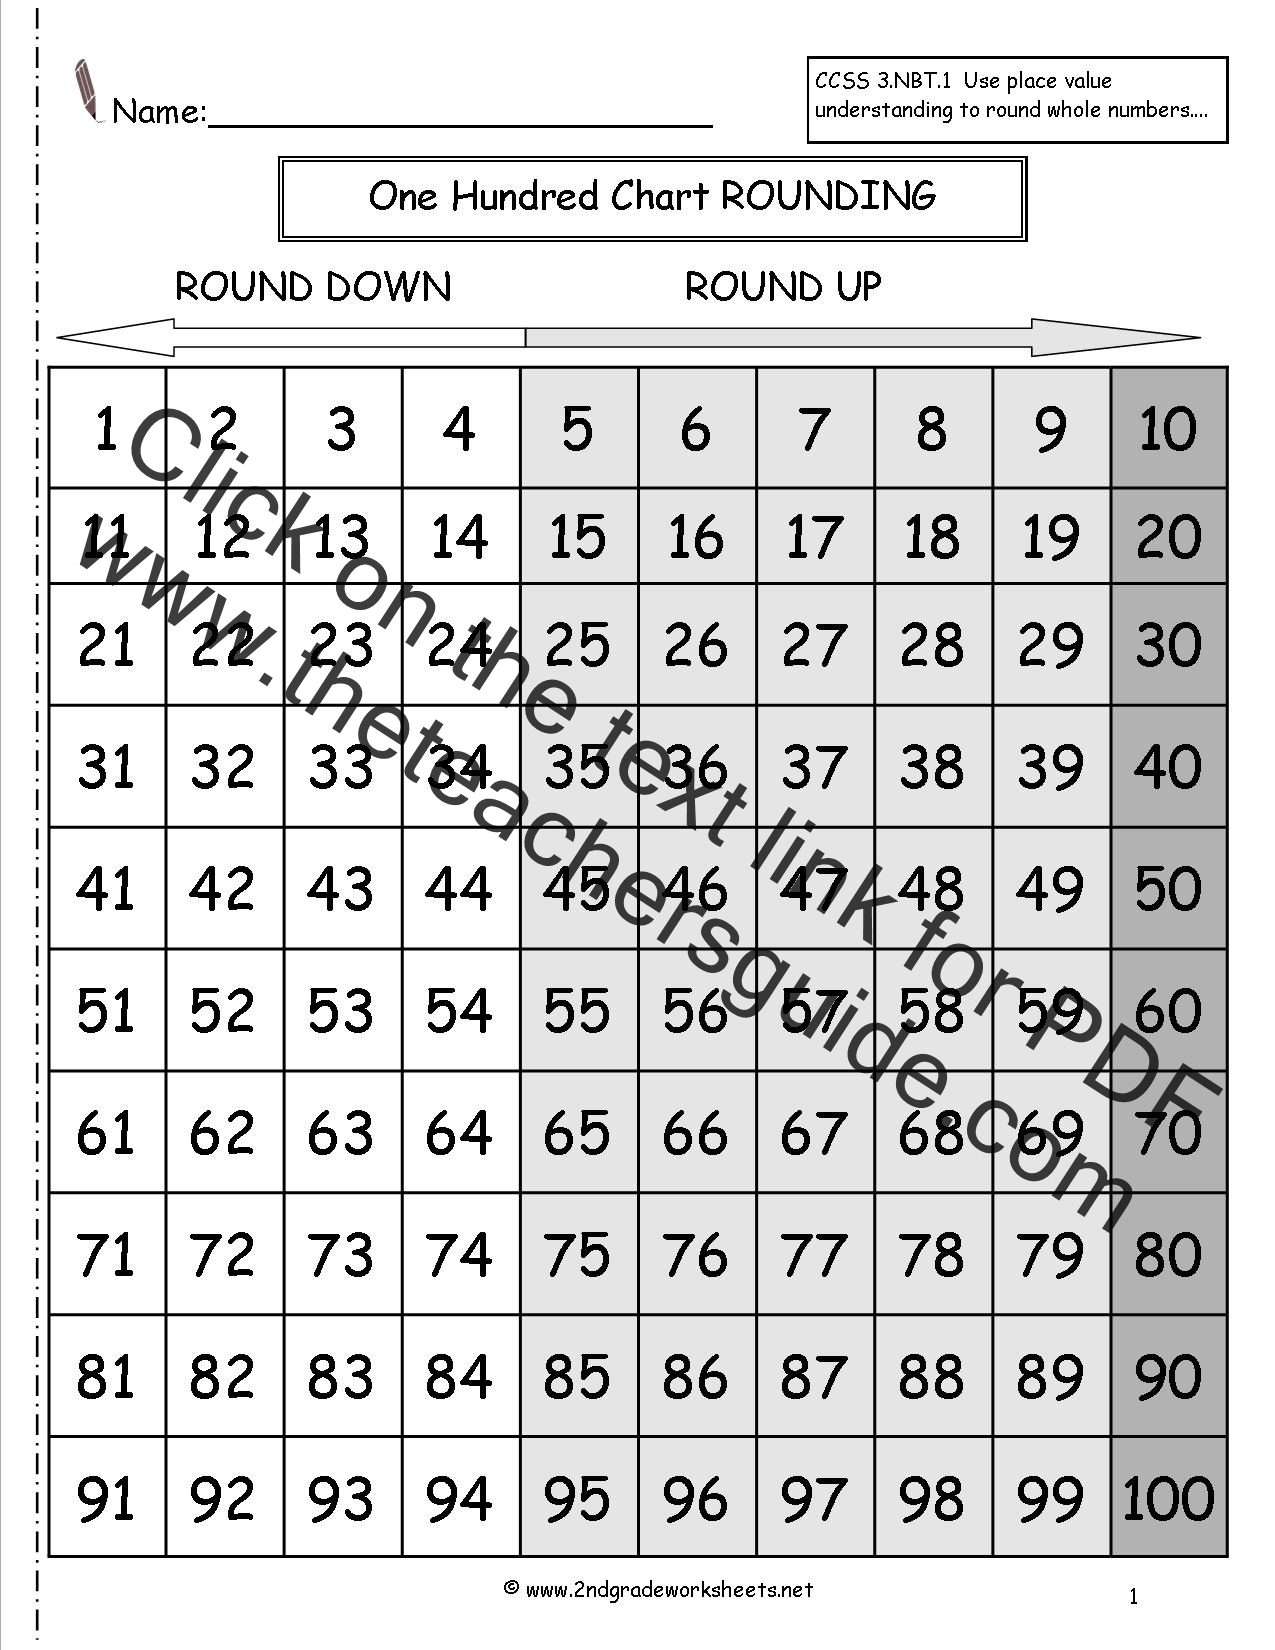 Worksheets Rounding Numbers Worksheets rounding whole numbers worksheets